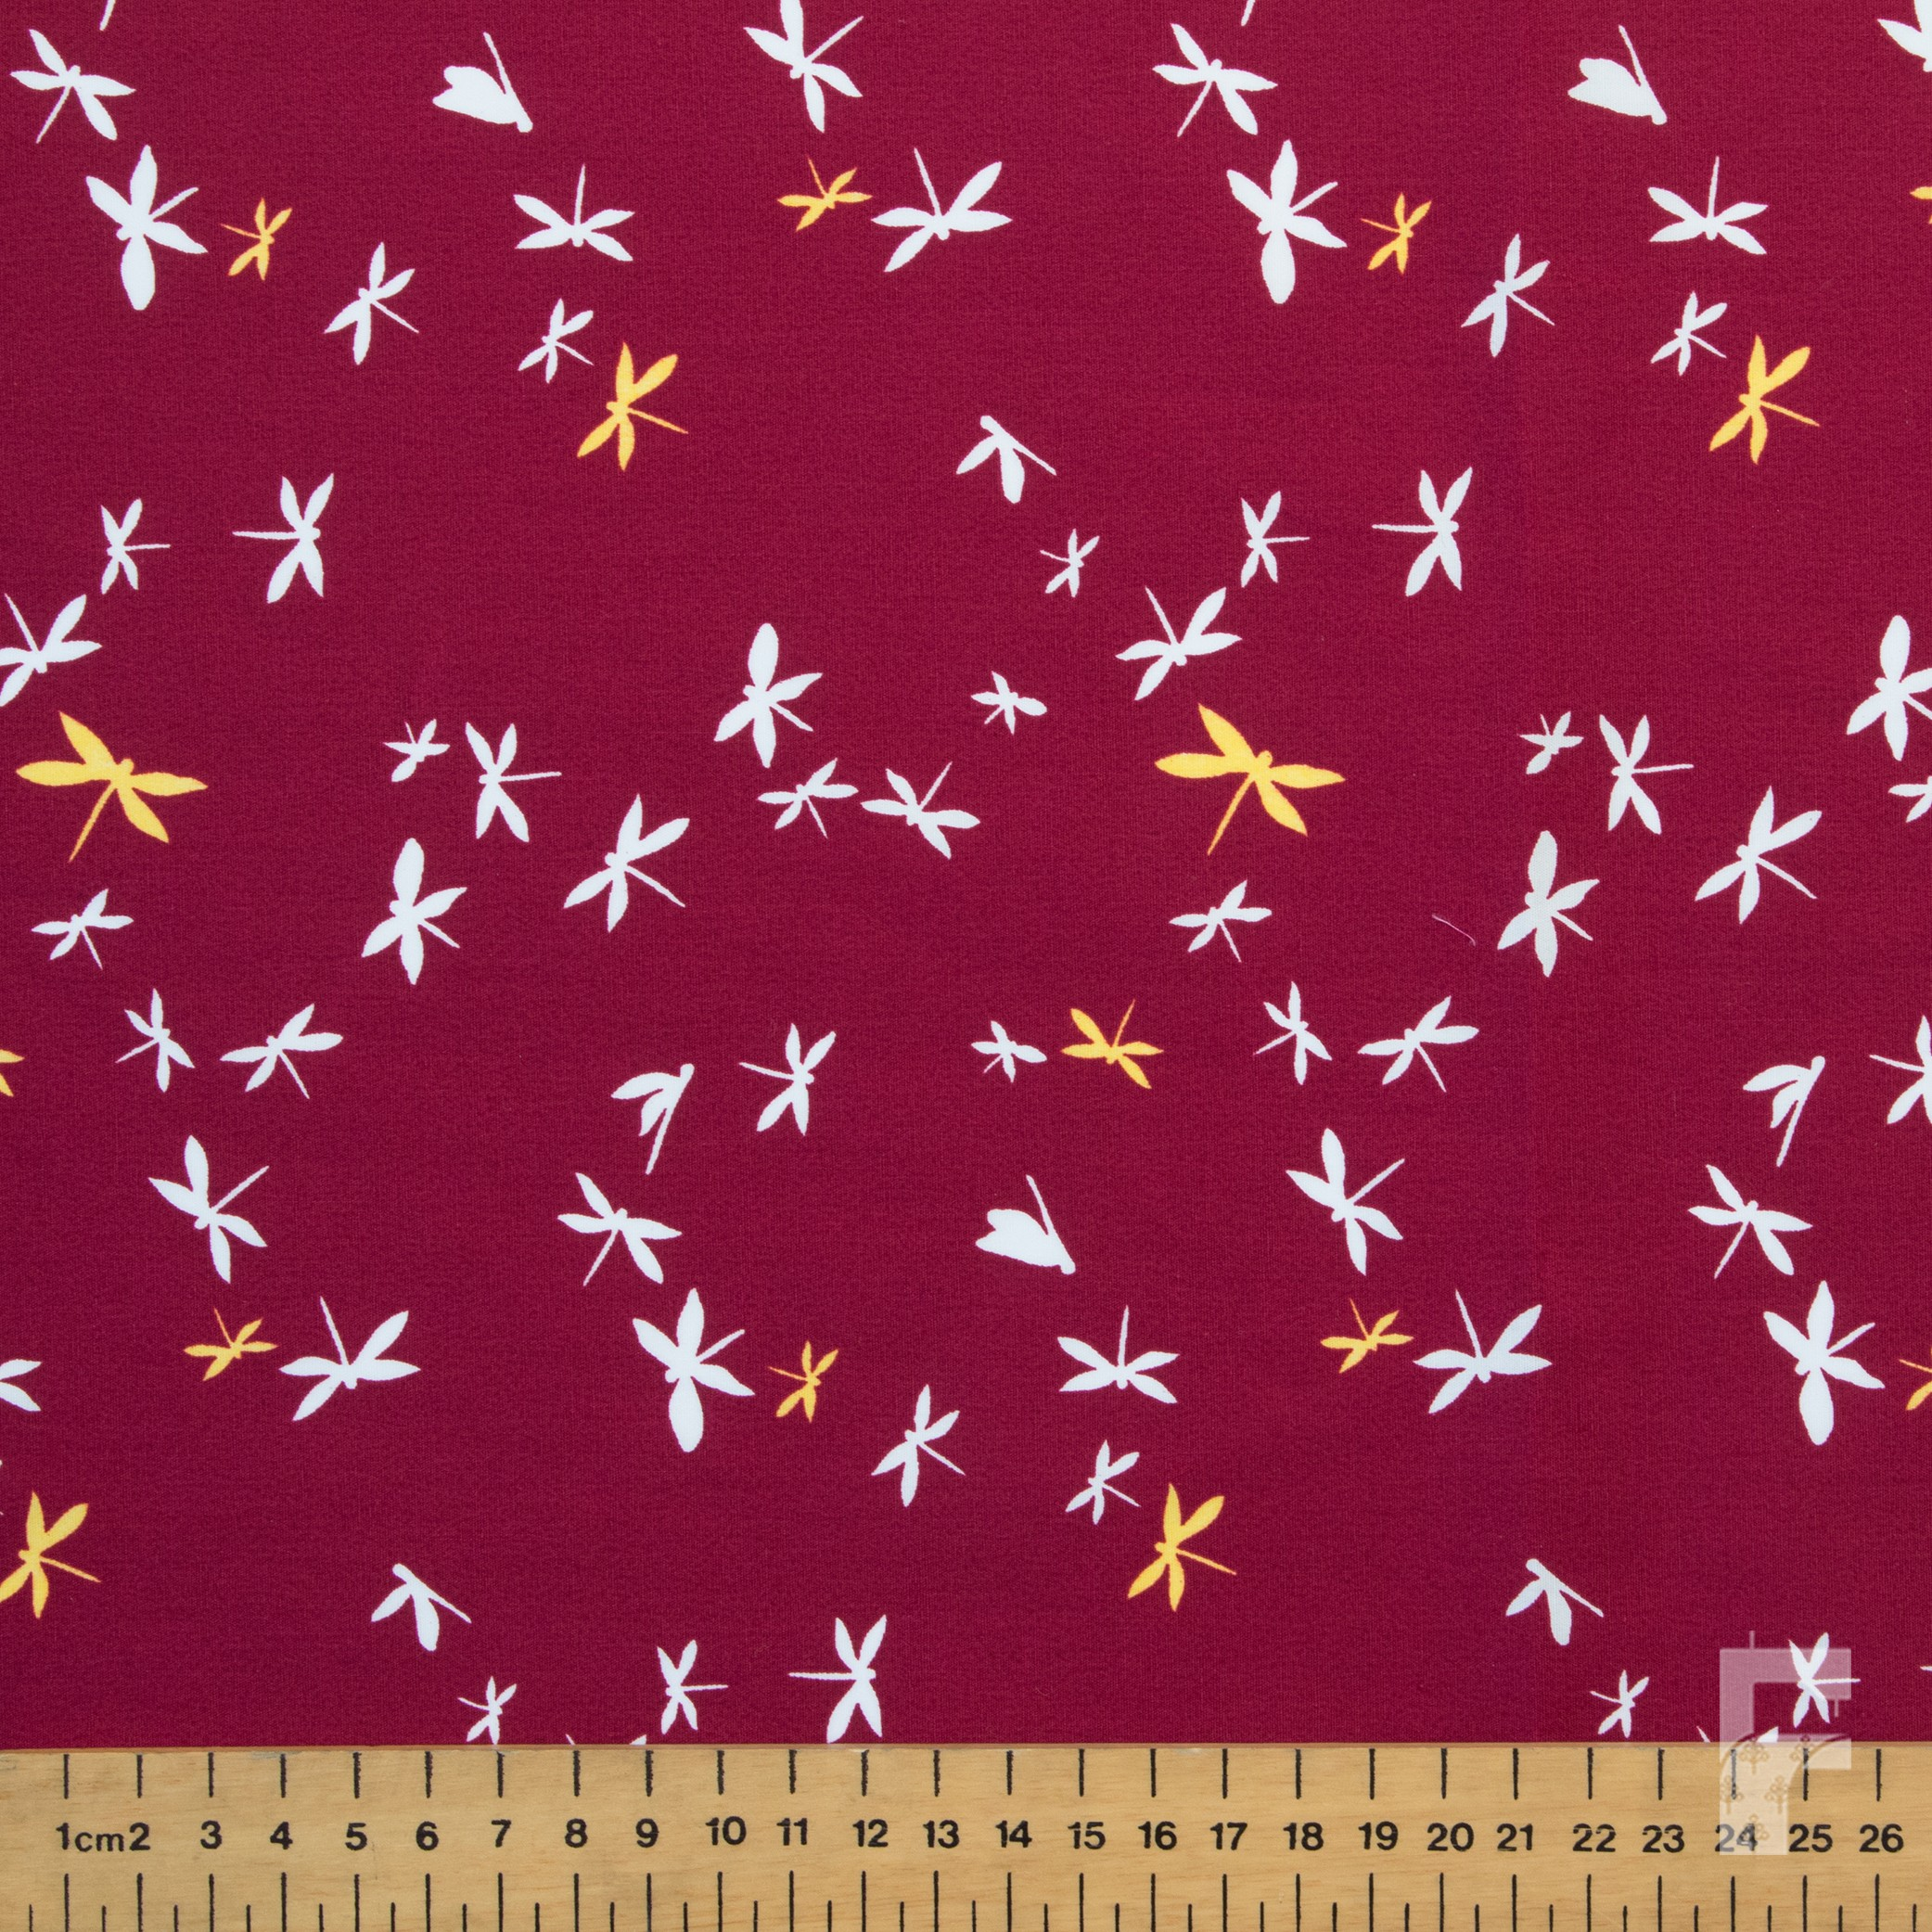 Cotton Poplin Print Fabric Woodlands Story The Fabric